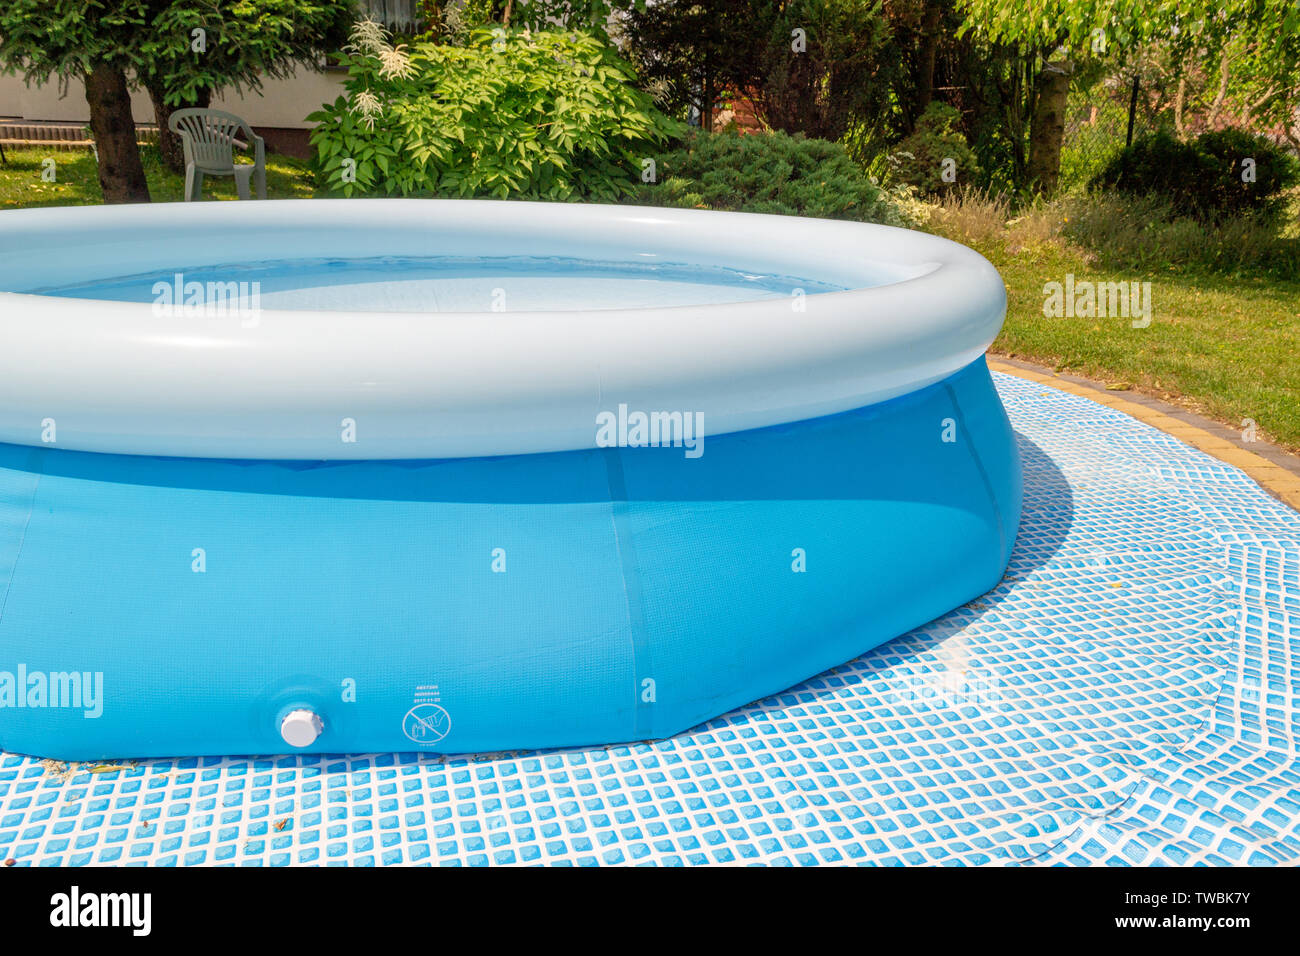 Round Swimming Pool Stockfotos & Round Swimming Pool Bilder ...